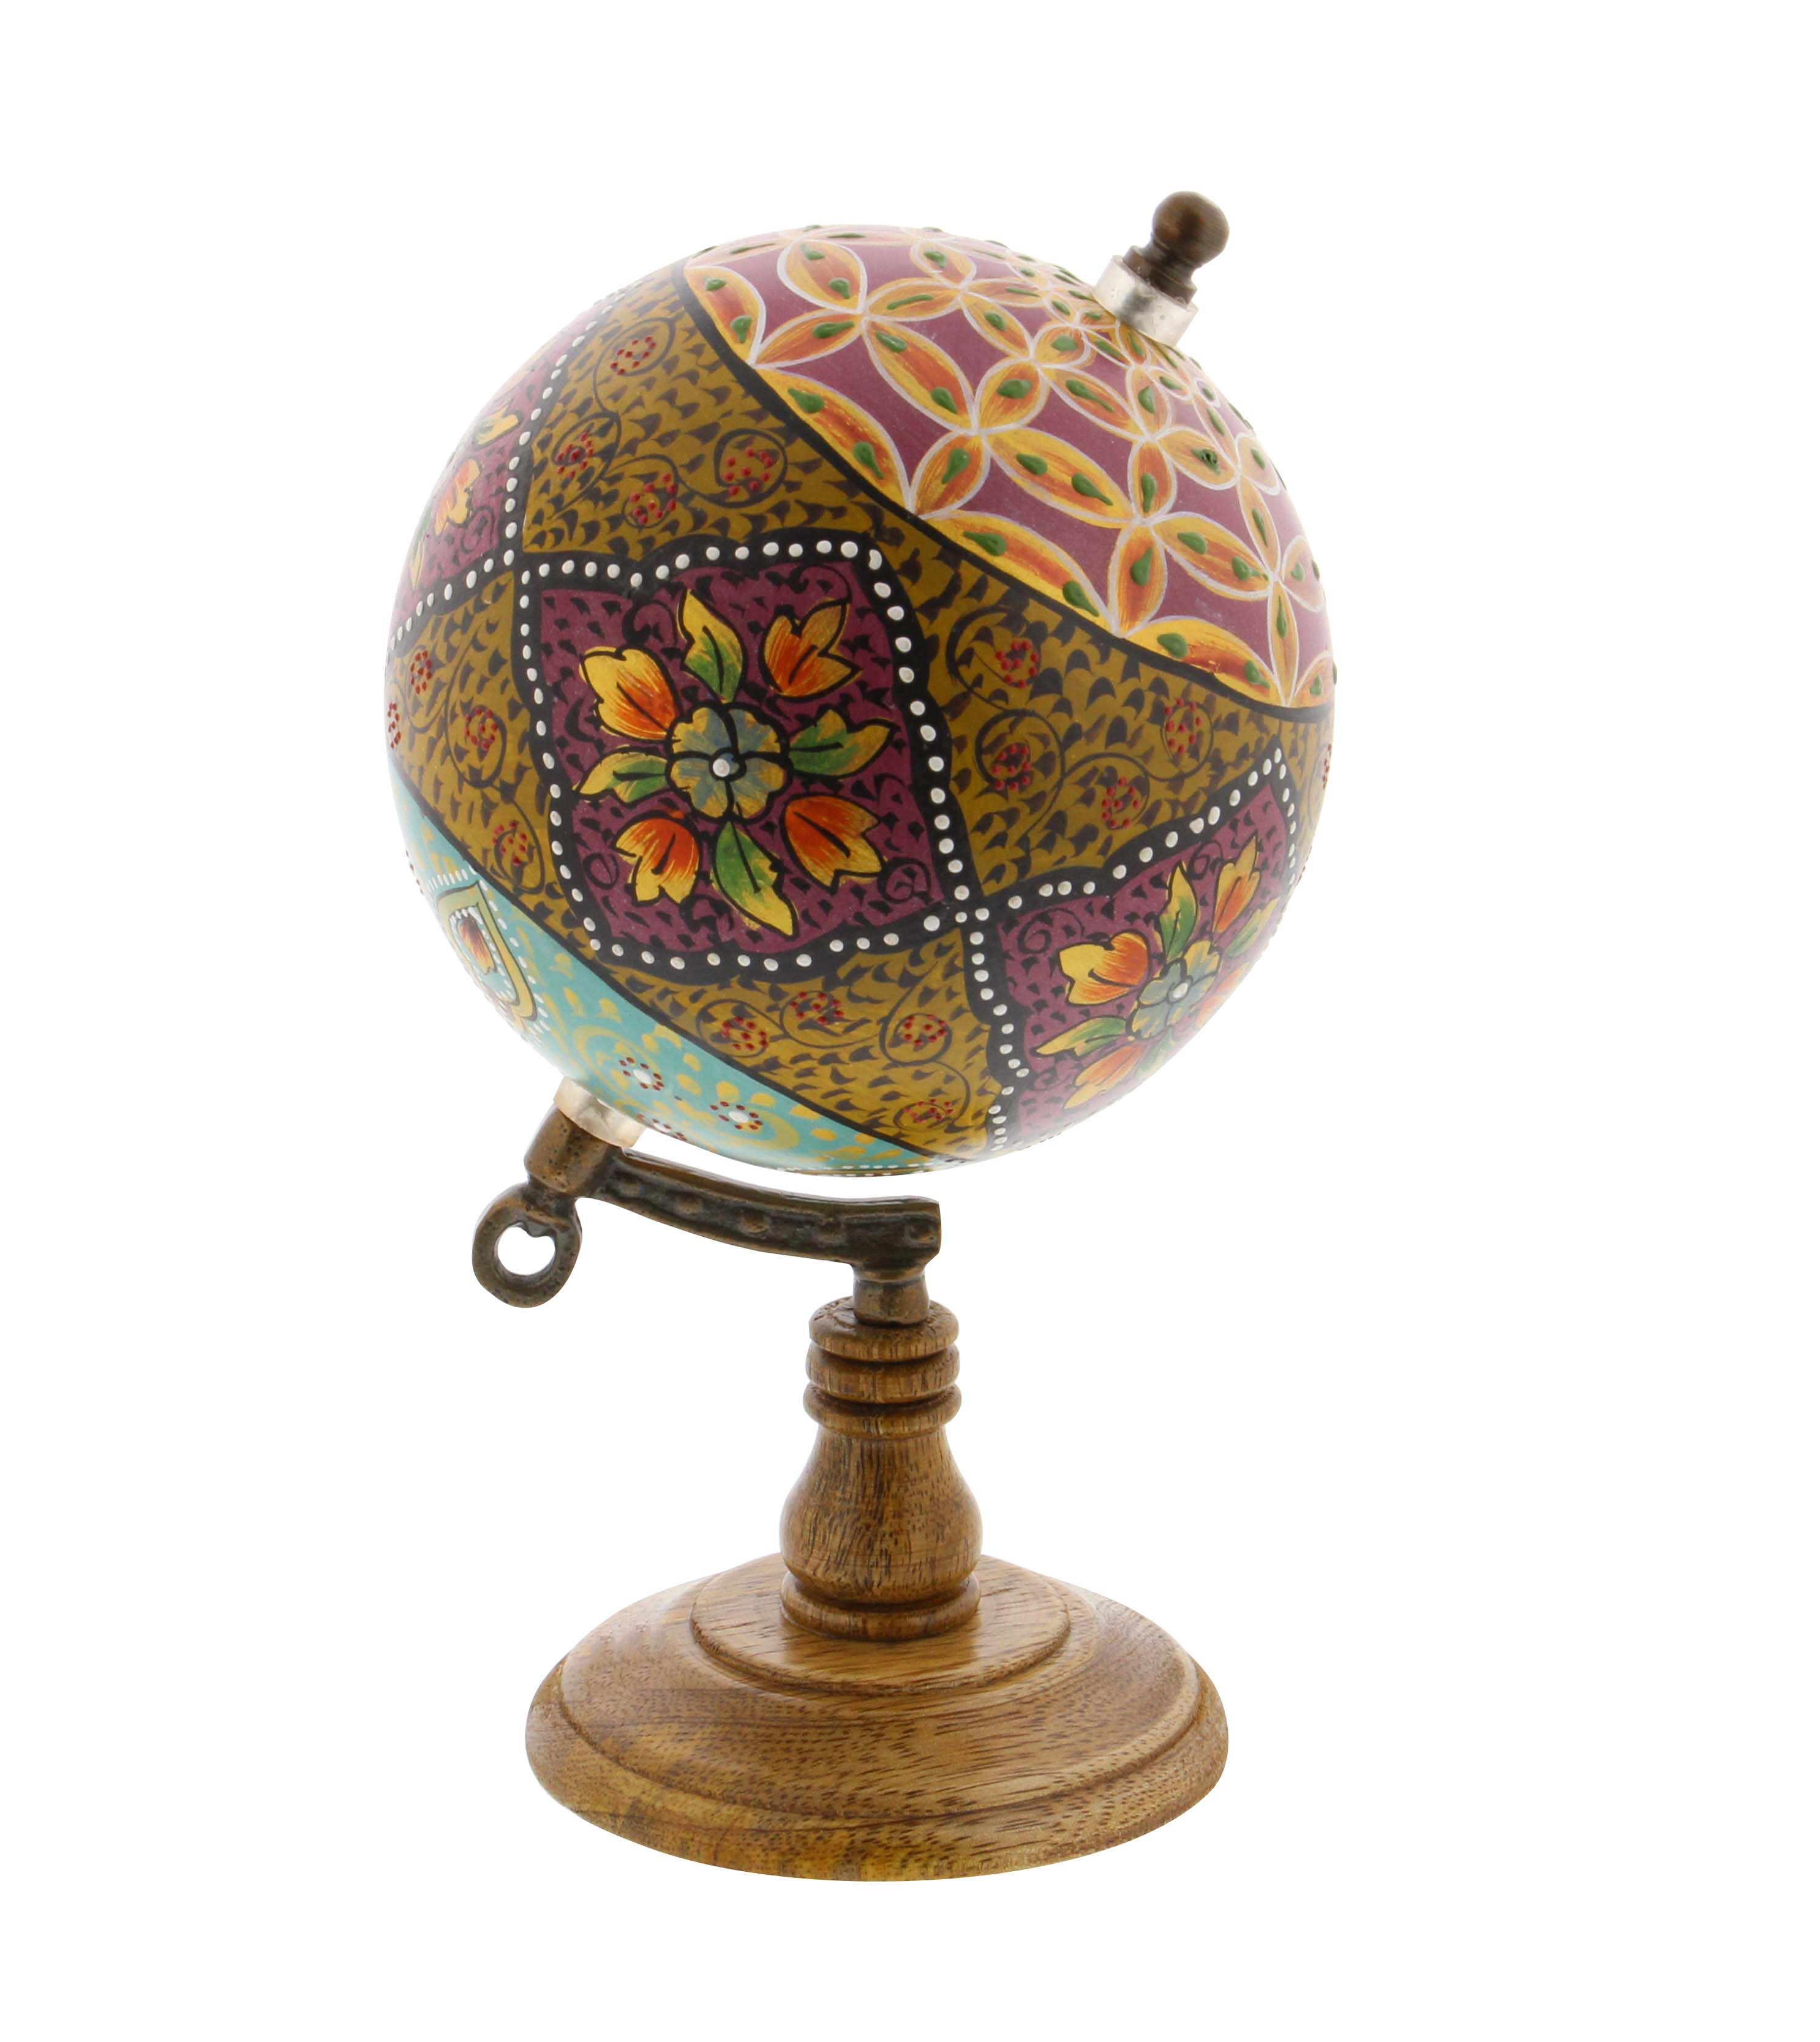 Decmode Traditional 9 Inch Resin And Wood Decorative Floral Globe, Multicolor